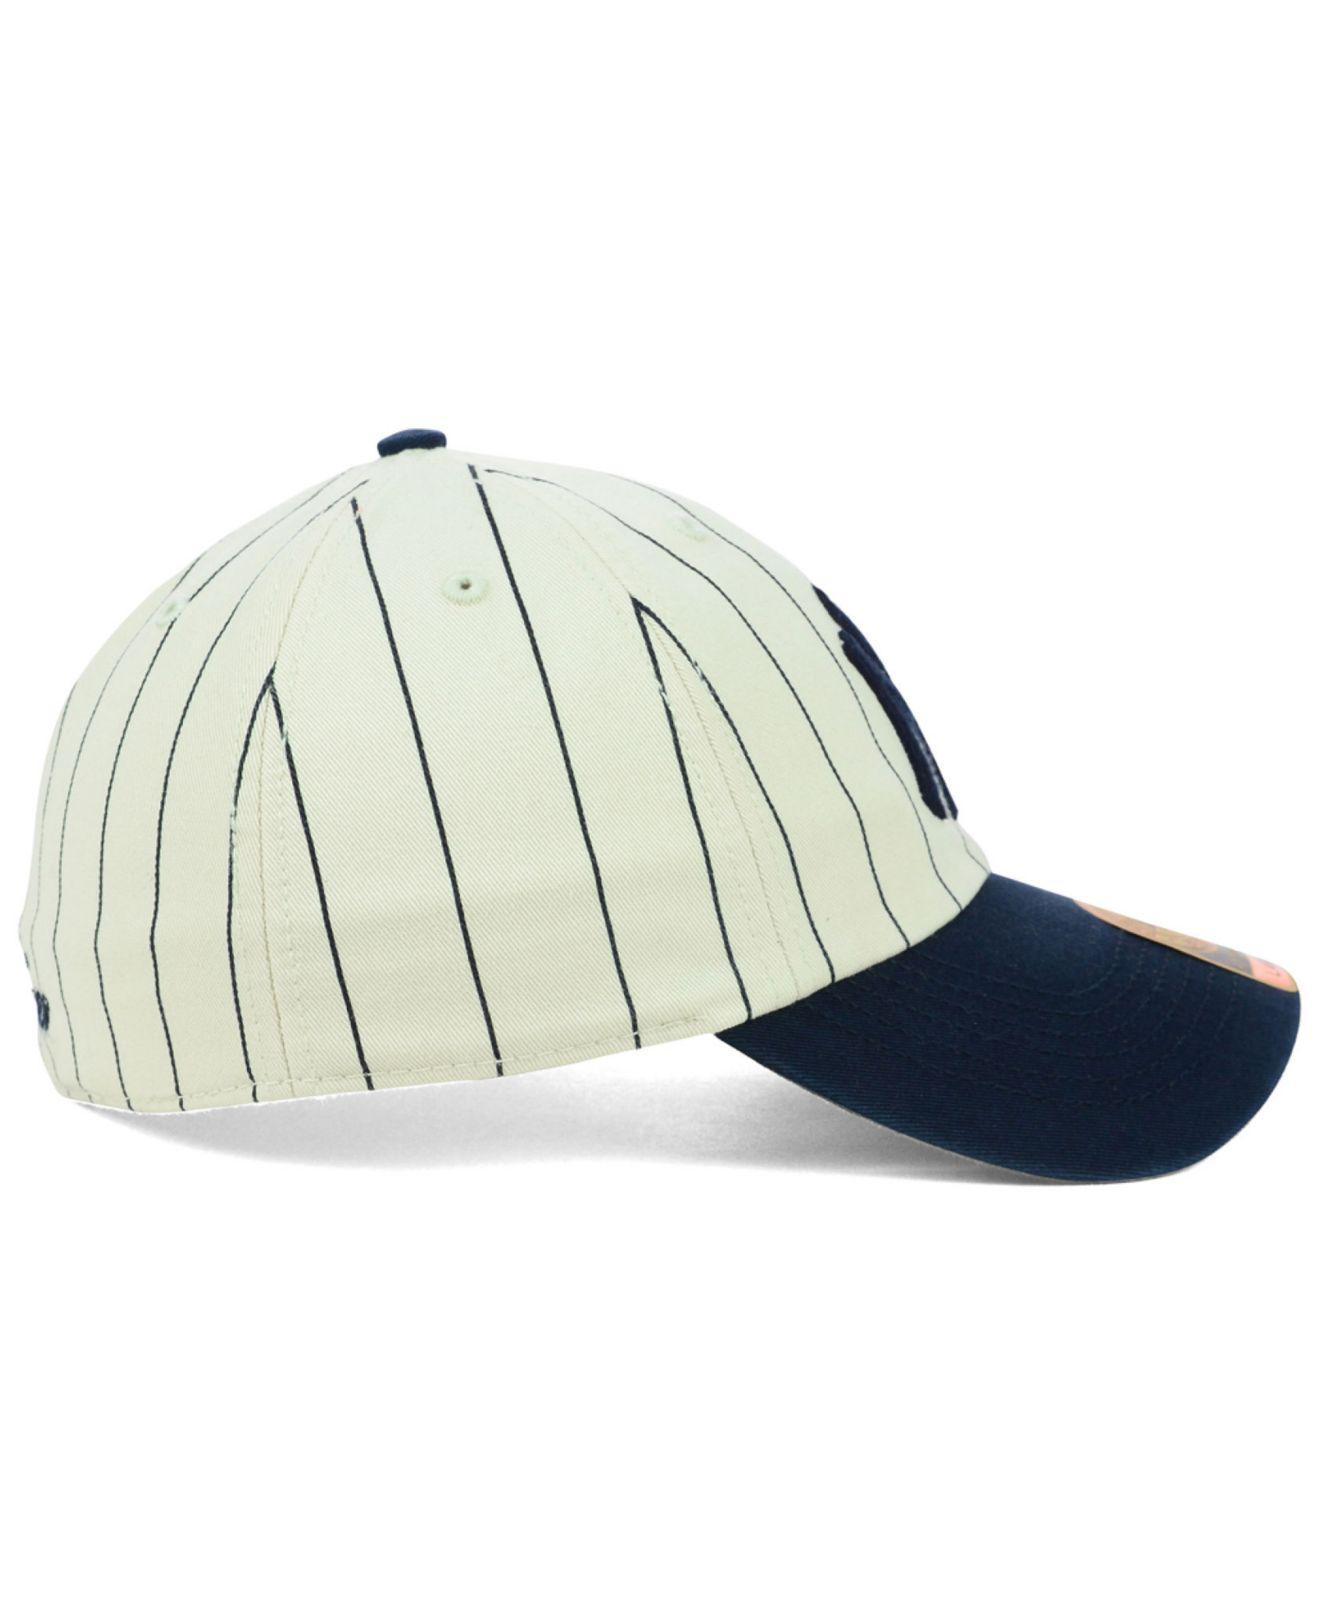 1bca80c2266f5 47 Brand - Blue New York Yankees Pinstripe Franchise Cap for Men - Lyst.  View fullscreen